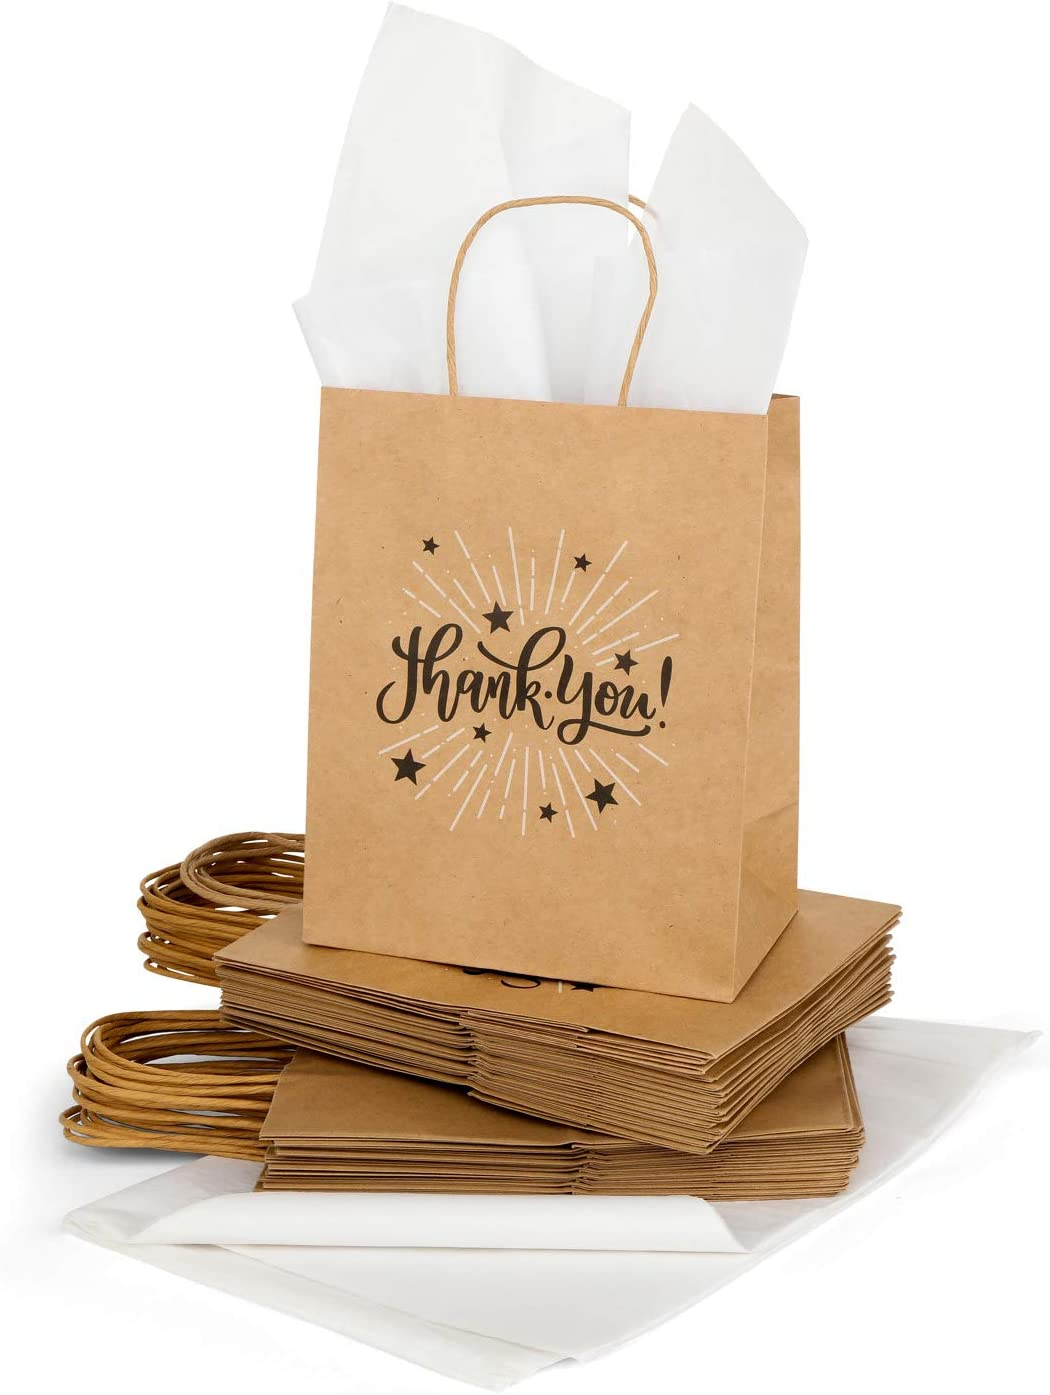 The Little Sapling | 50 Medium Thank You Gift Bags Bulk with Handle and Tissue Paper | Brown Kraft Paper Bags for Parties, Weddings, Shopping | Size 8x4.75x10 in, Tissue 20x26 in